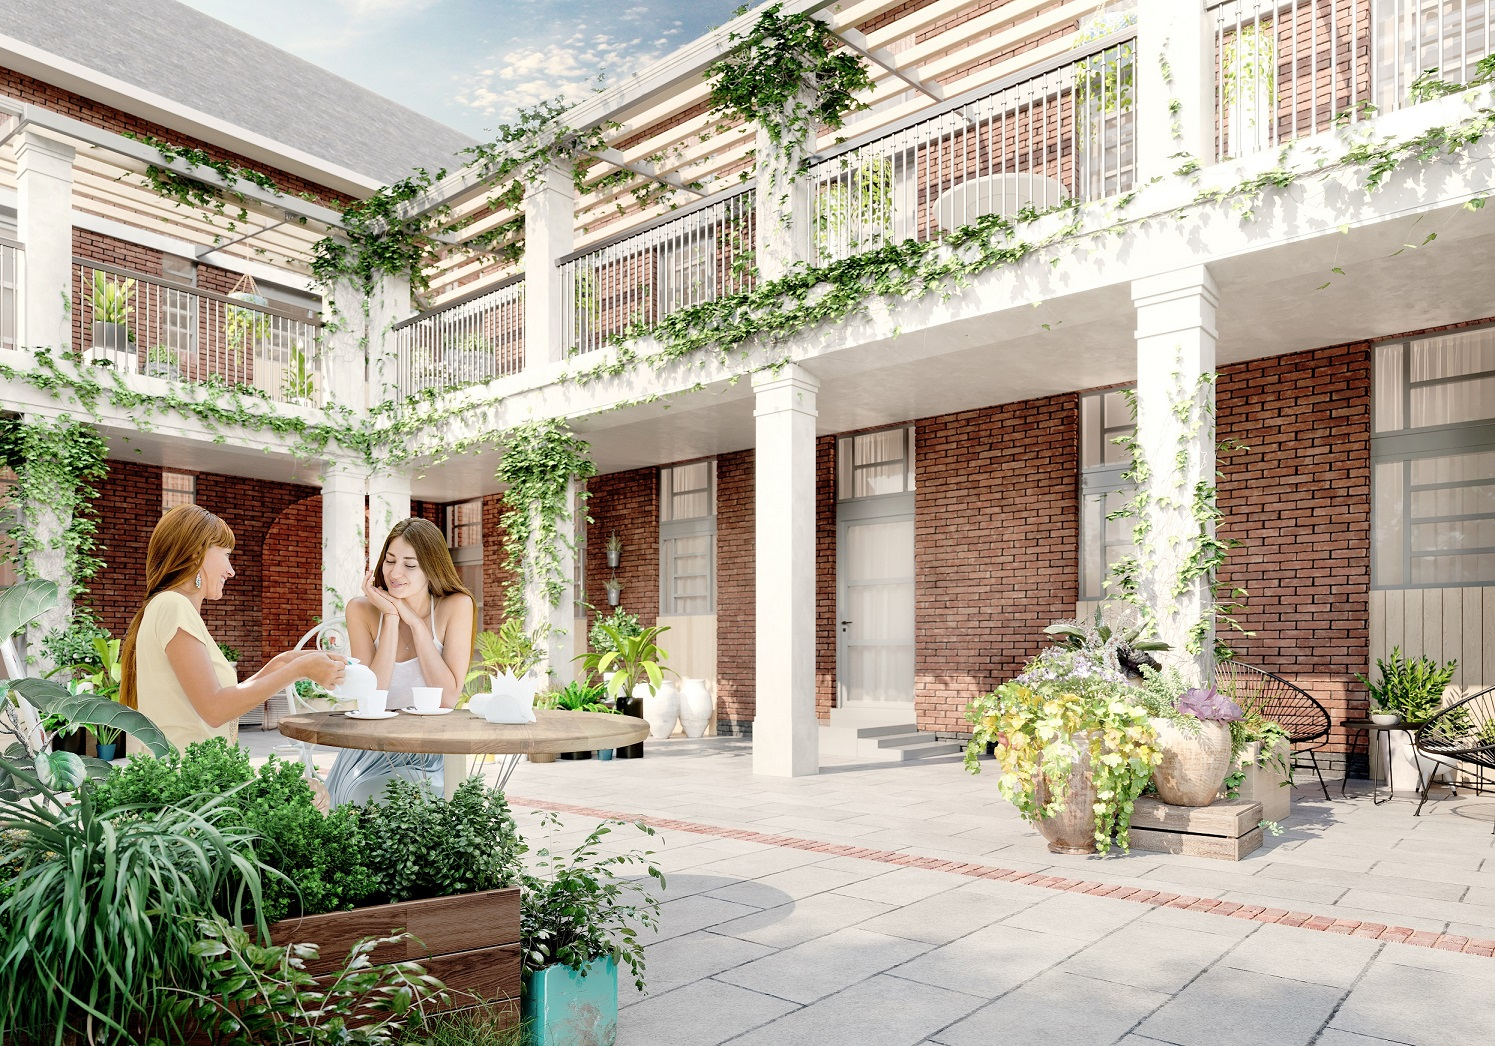 Meadows Green Launches The Nottingham Home Project